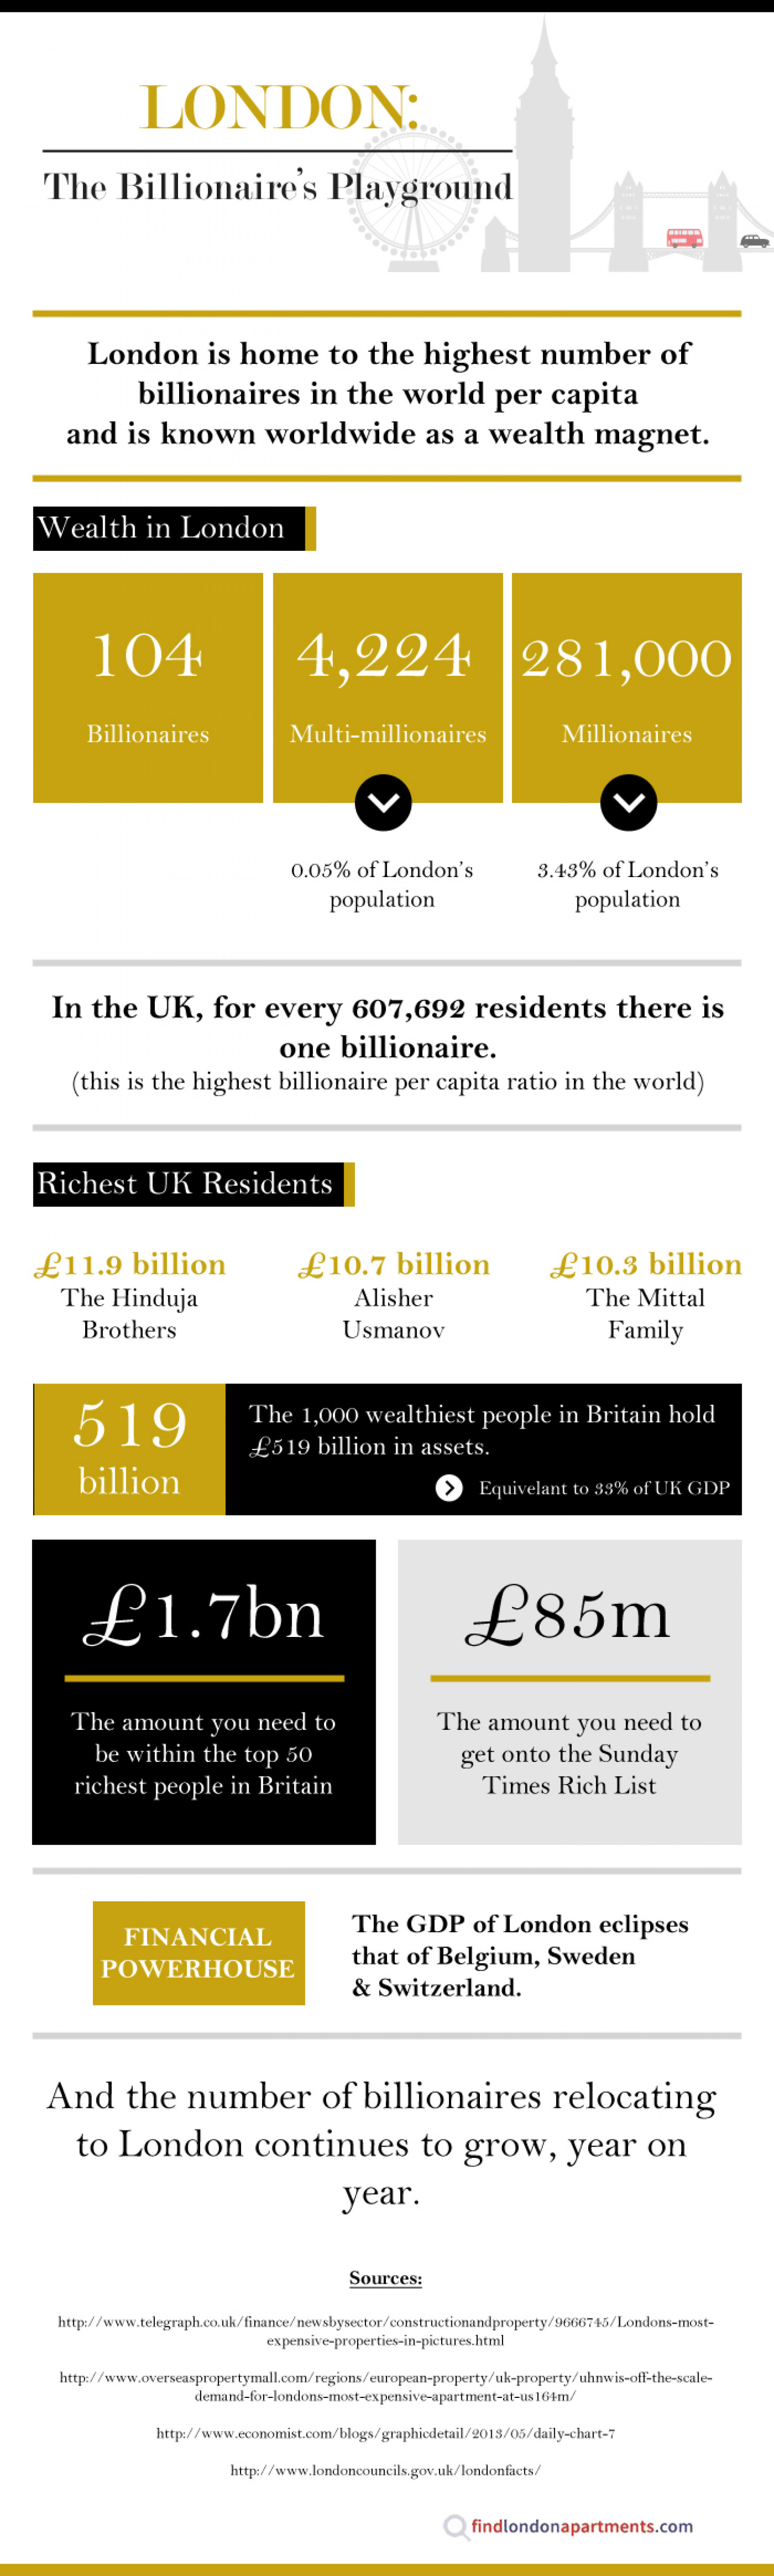 London: The Billionaire's Playground Infographic